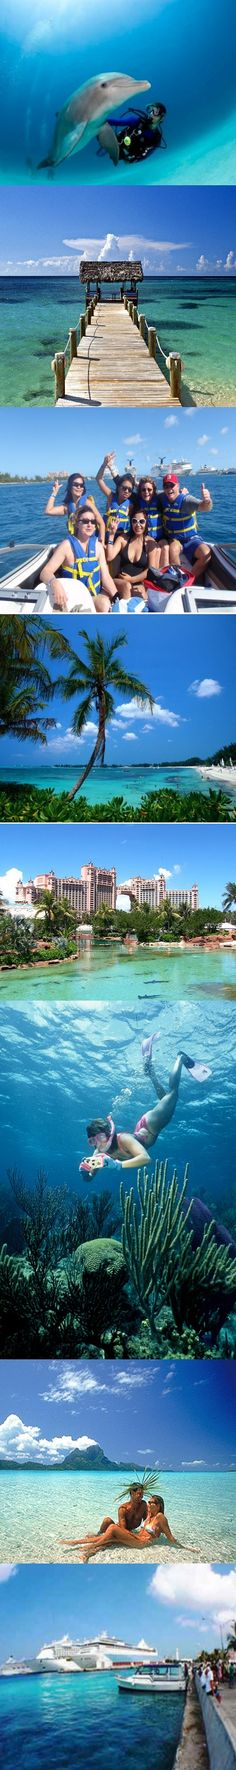 ✈✈✈ They are giving out free tickets to the Bahamas, I really really wanna go to the Bahamas, has anyone given them a shot? http://www.mb01.com/lnk.asp?o=3990=48552=111693 ✈✈✈